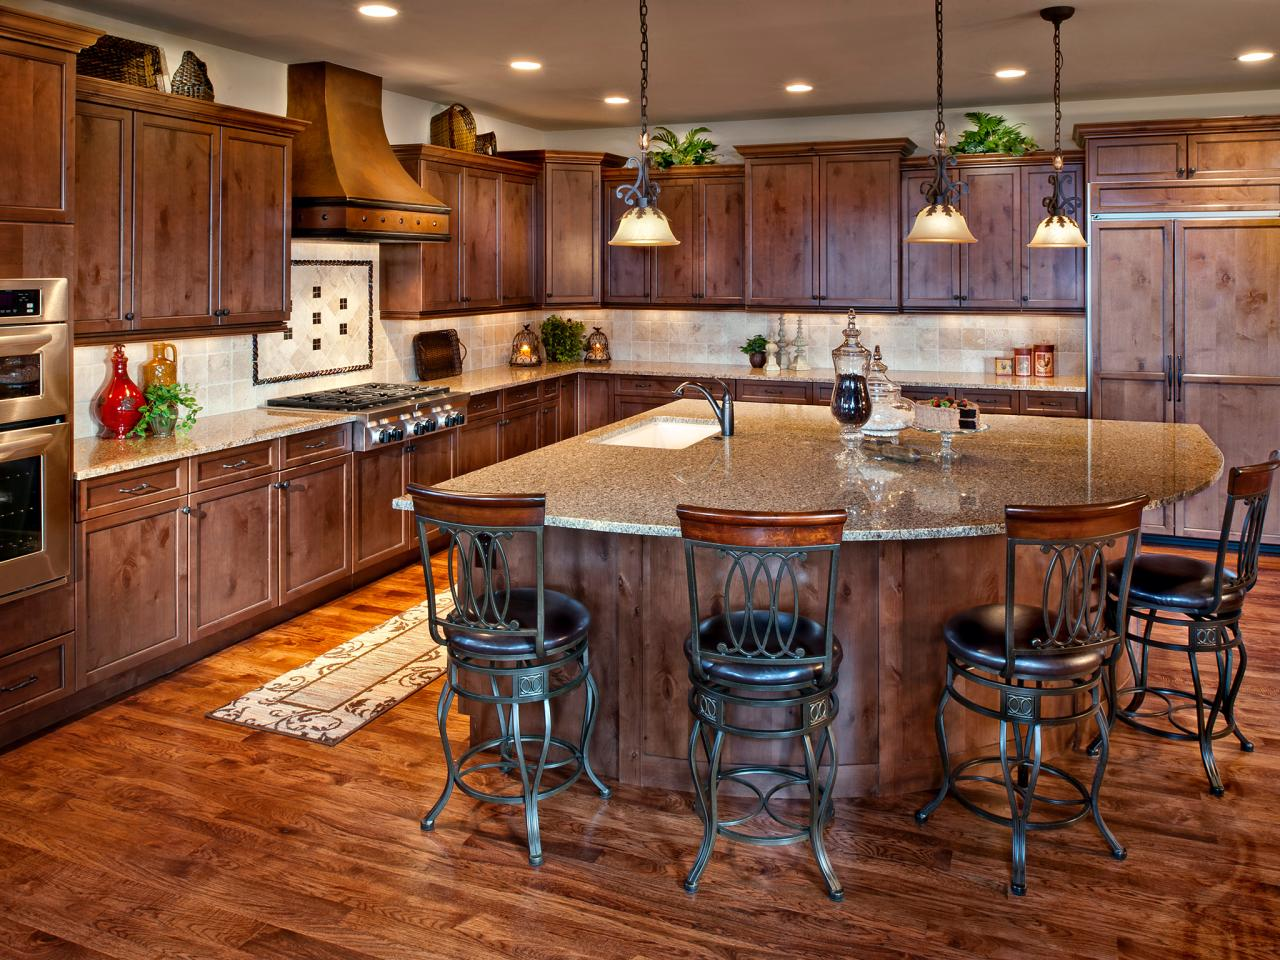 ci-denver-parade-of-homes_celebrity-15-kitchen-wide_s4x3-jpg-rend-hgtvcom-1280-960